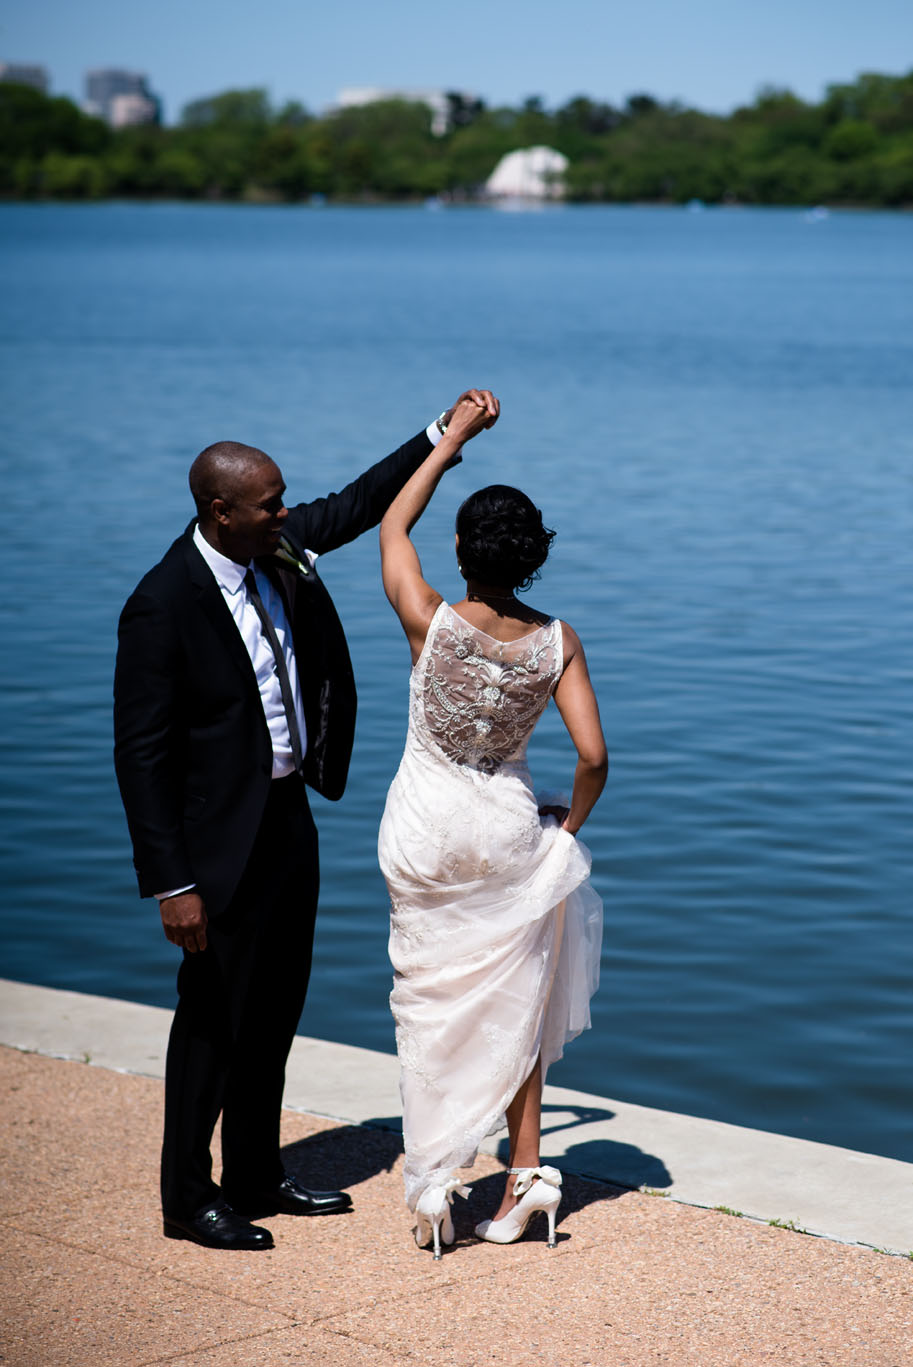 The Madious Wedding Photography DC groom twirling bride by the water